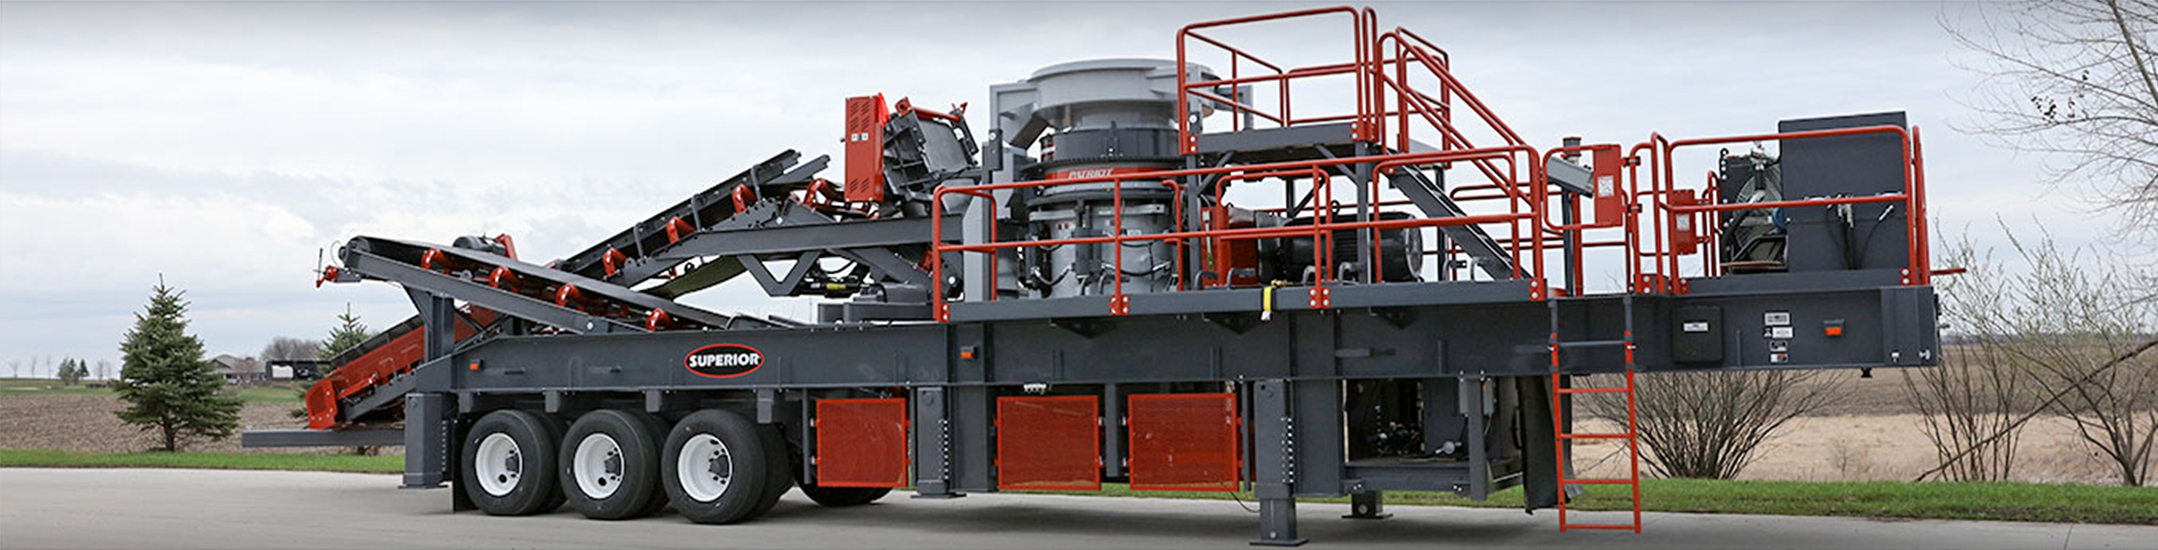 Patriot® Cone Crusher Plant by Superior Industries